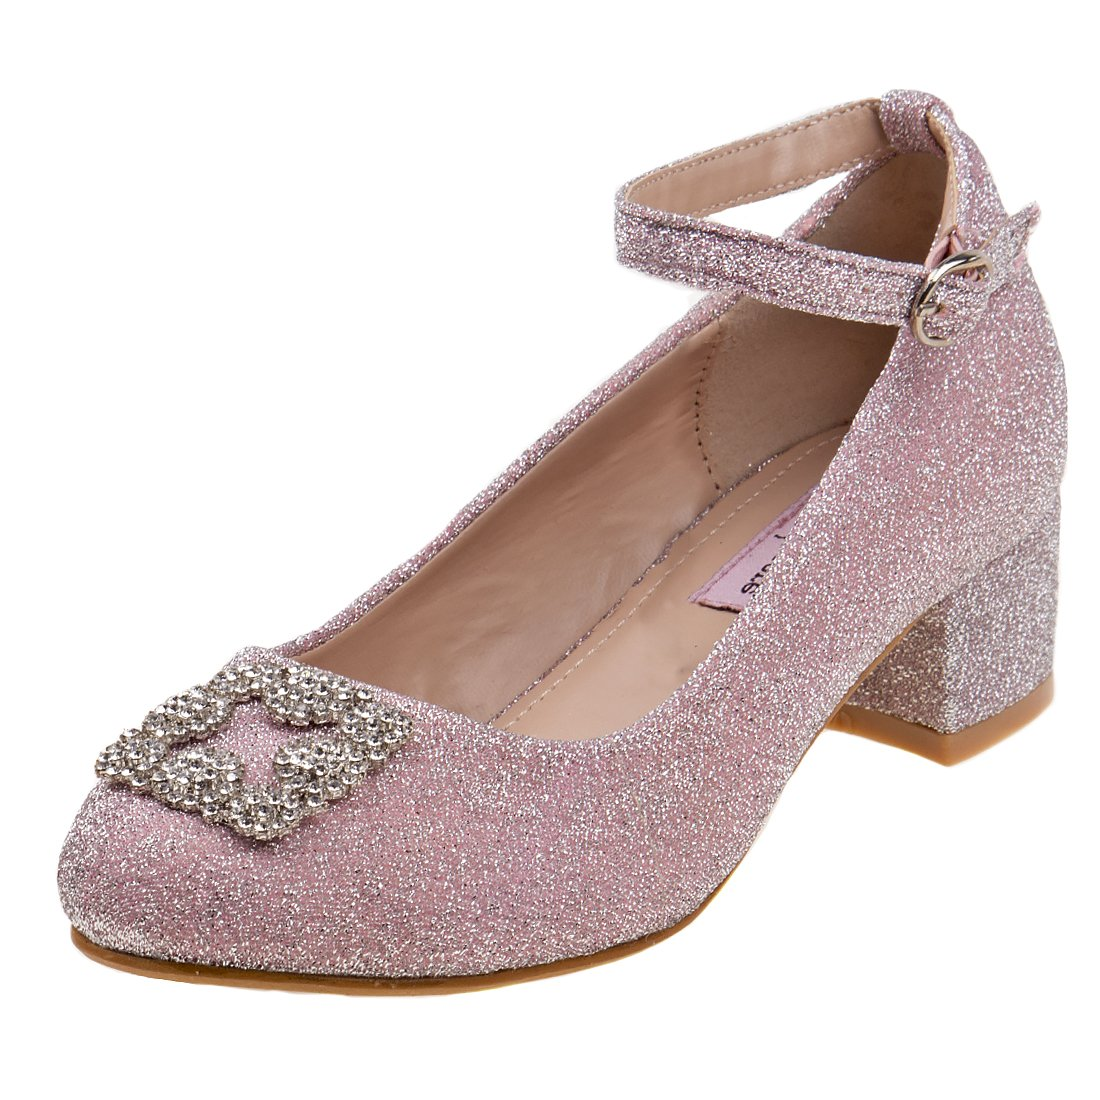 Nanette Lepore Girls Glitter Mesh Dress Block Heel Shoes with Rhinestone Buckle, Pink, 11 M US Little Kid'